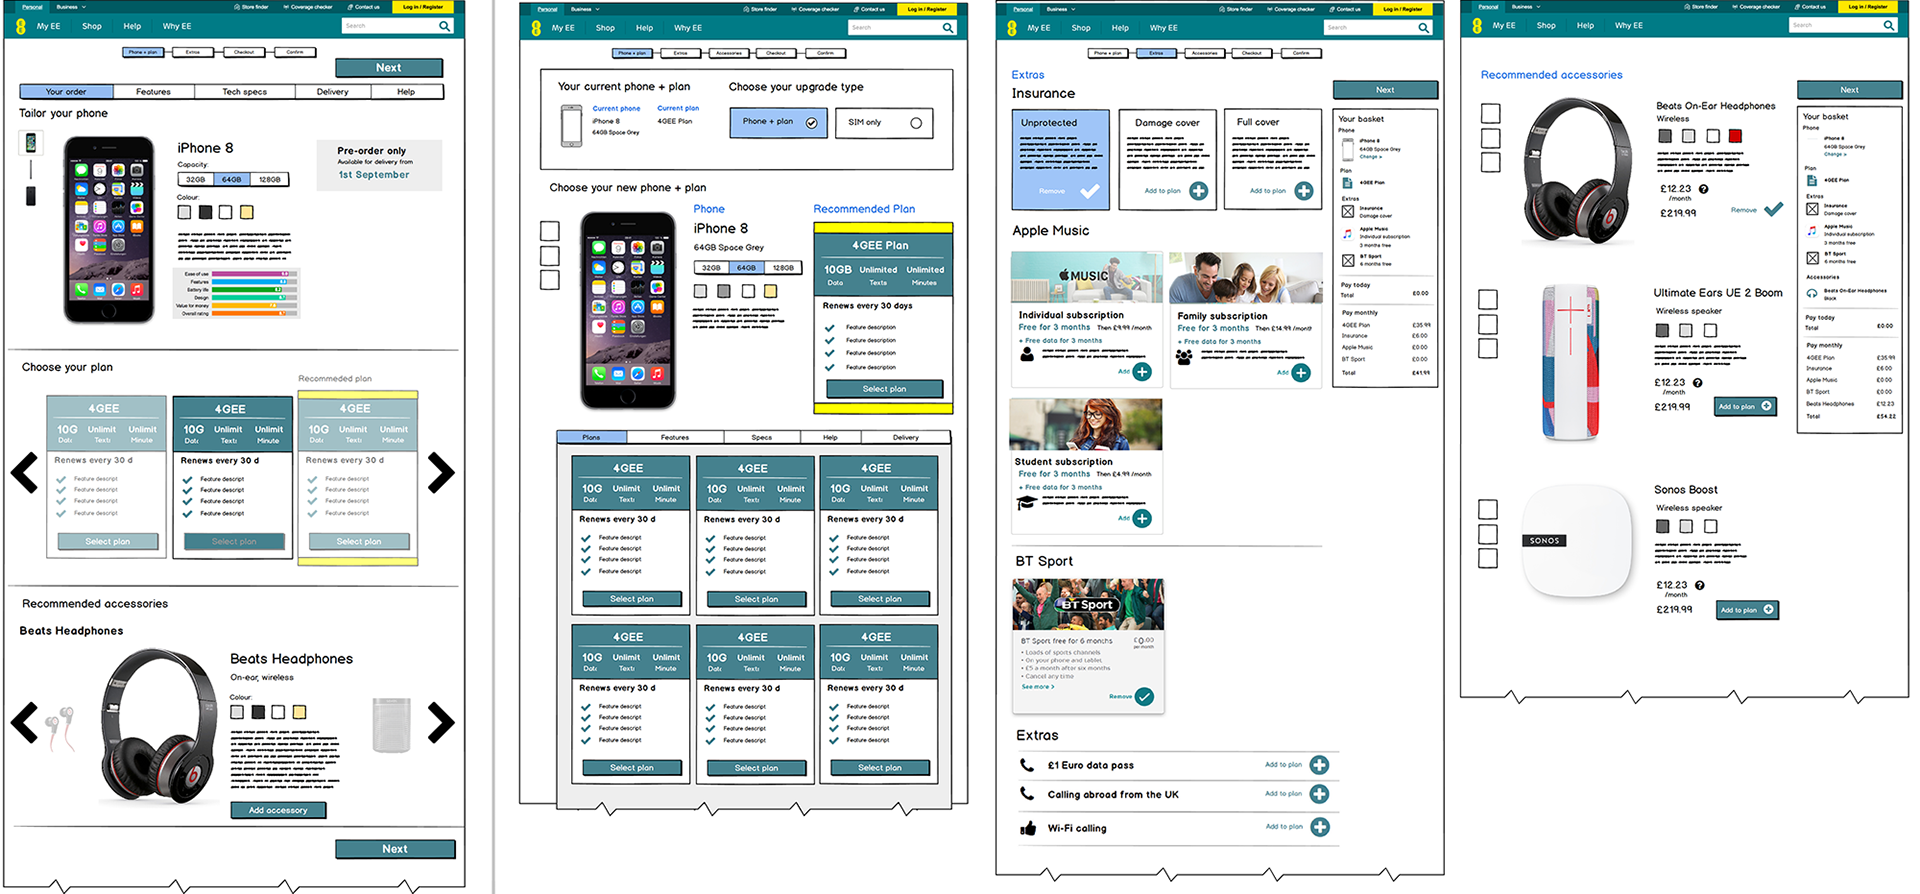 EE's particular focus was on conversion, and so the majority of effort went into the purchase journey for the new iPhones. Working with EE engineers to understand the limits of the back-end systems, I explored a range of different purchase journey configurations and introduced many new ideas which helped make EE's confusing suite of price plans and options easier to understand for customers